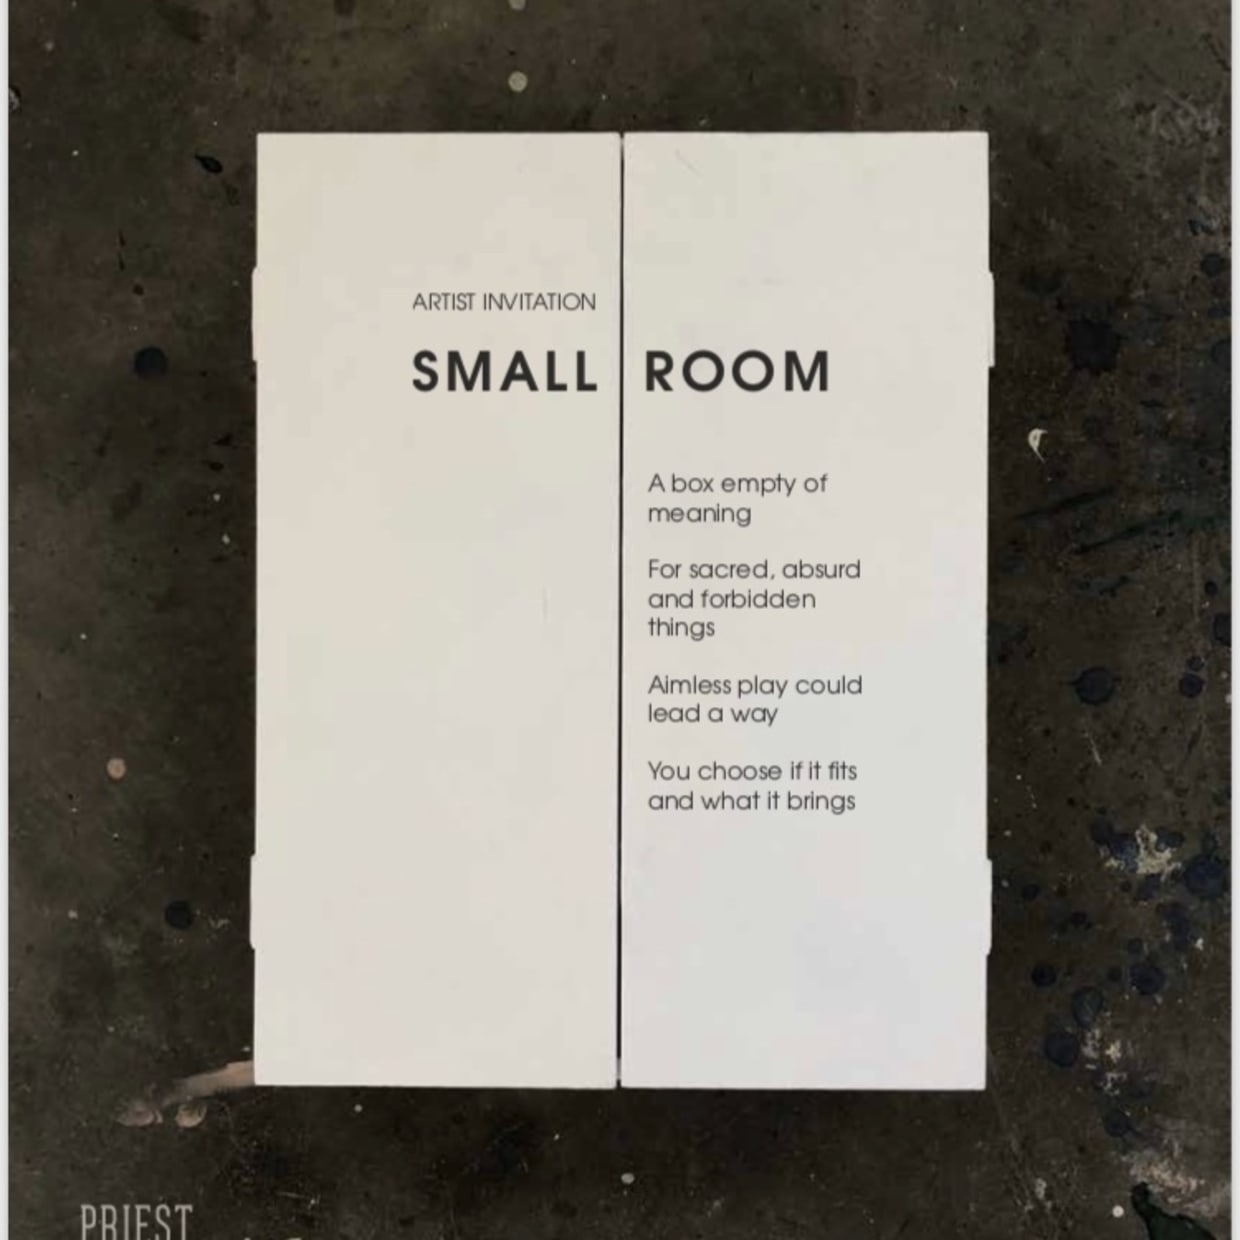 'SMALL ROOM' EXHIBITION AT PRIEST GALLERY